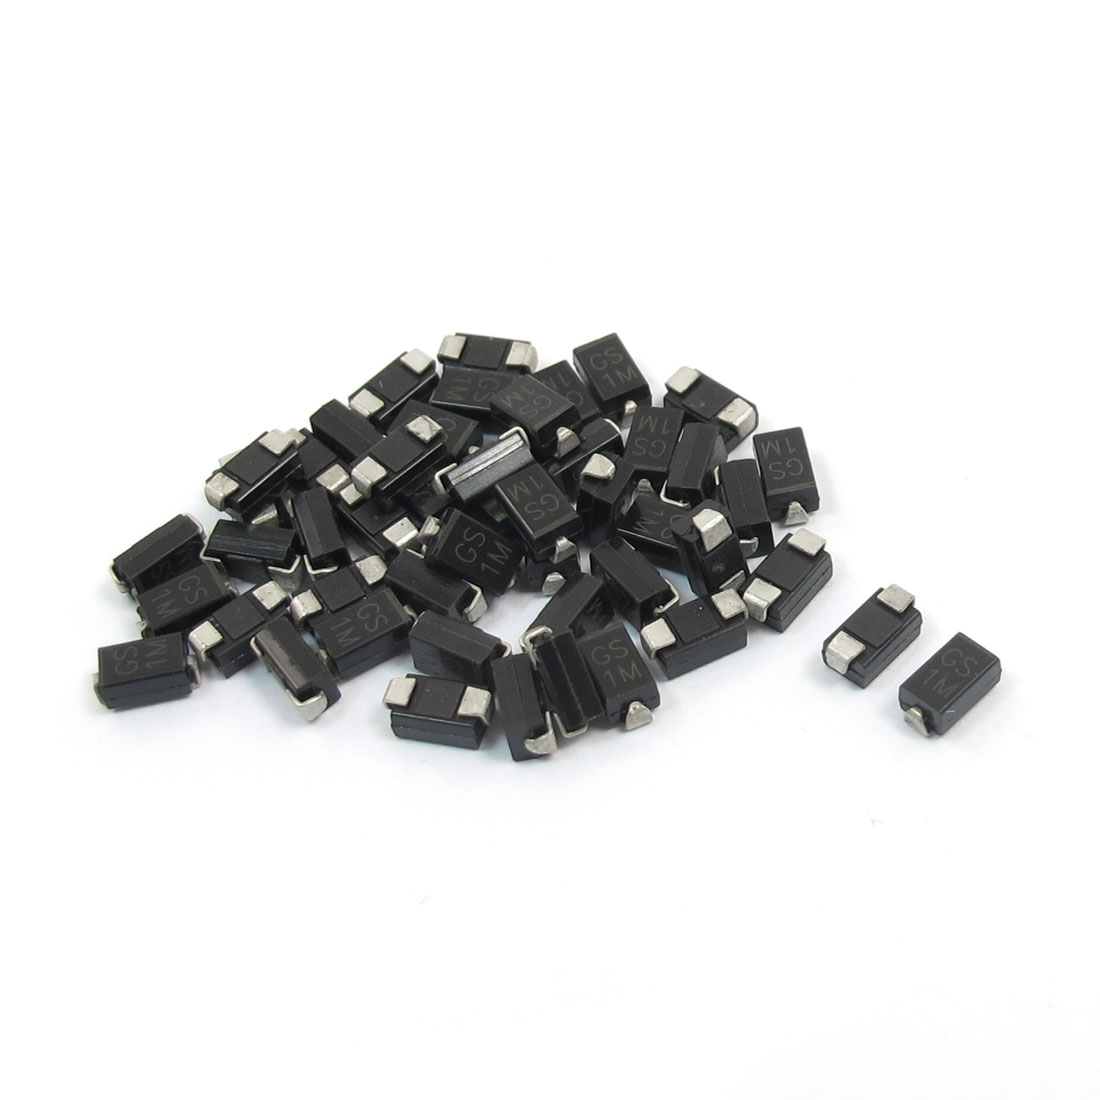 DO-214AC Package 1000V 1A SMD Semiconductor Rectifier Diode GS1M 50pcs